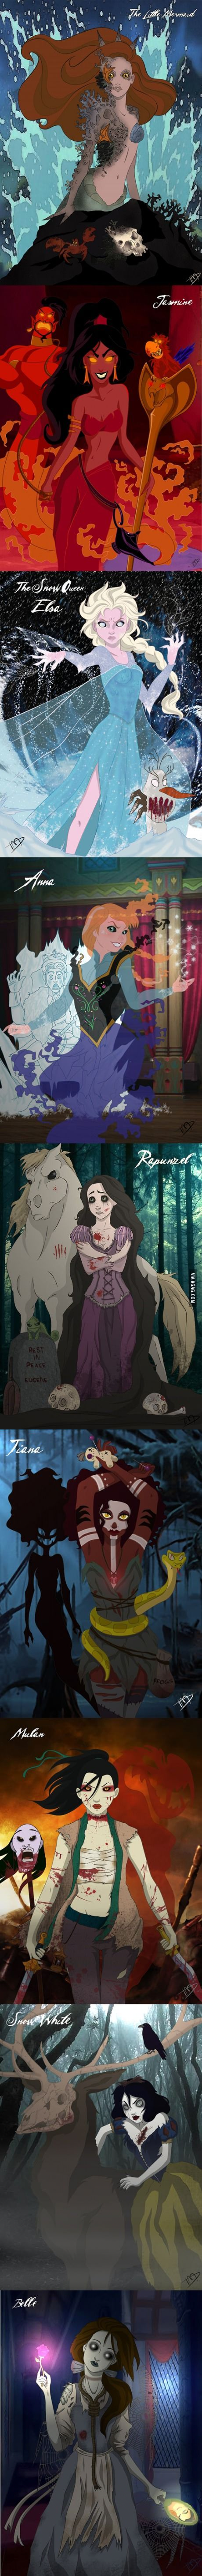 Some of these are creepy as hell. I would totally watch twisted versions of these Disney princess movies...